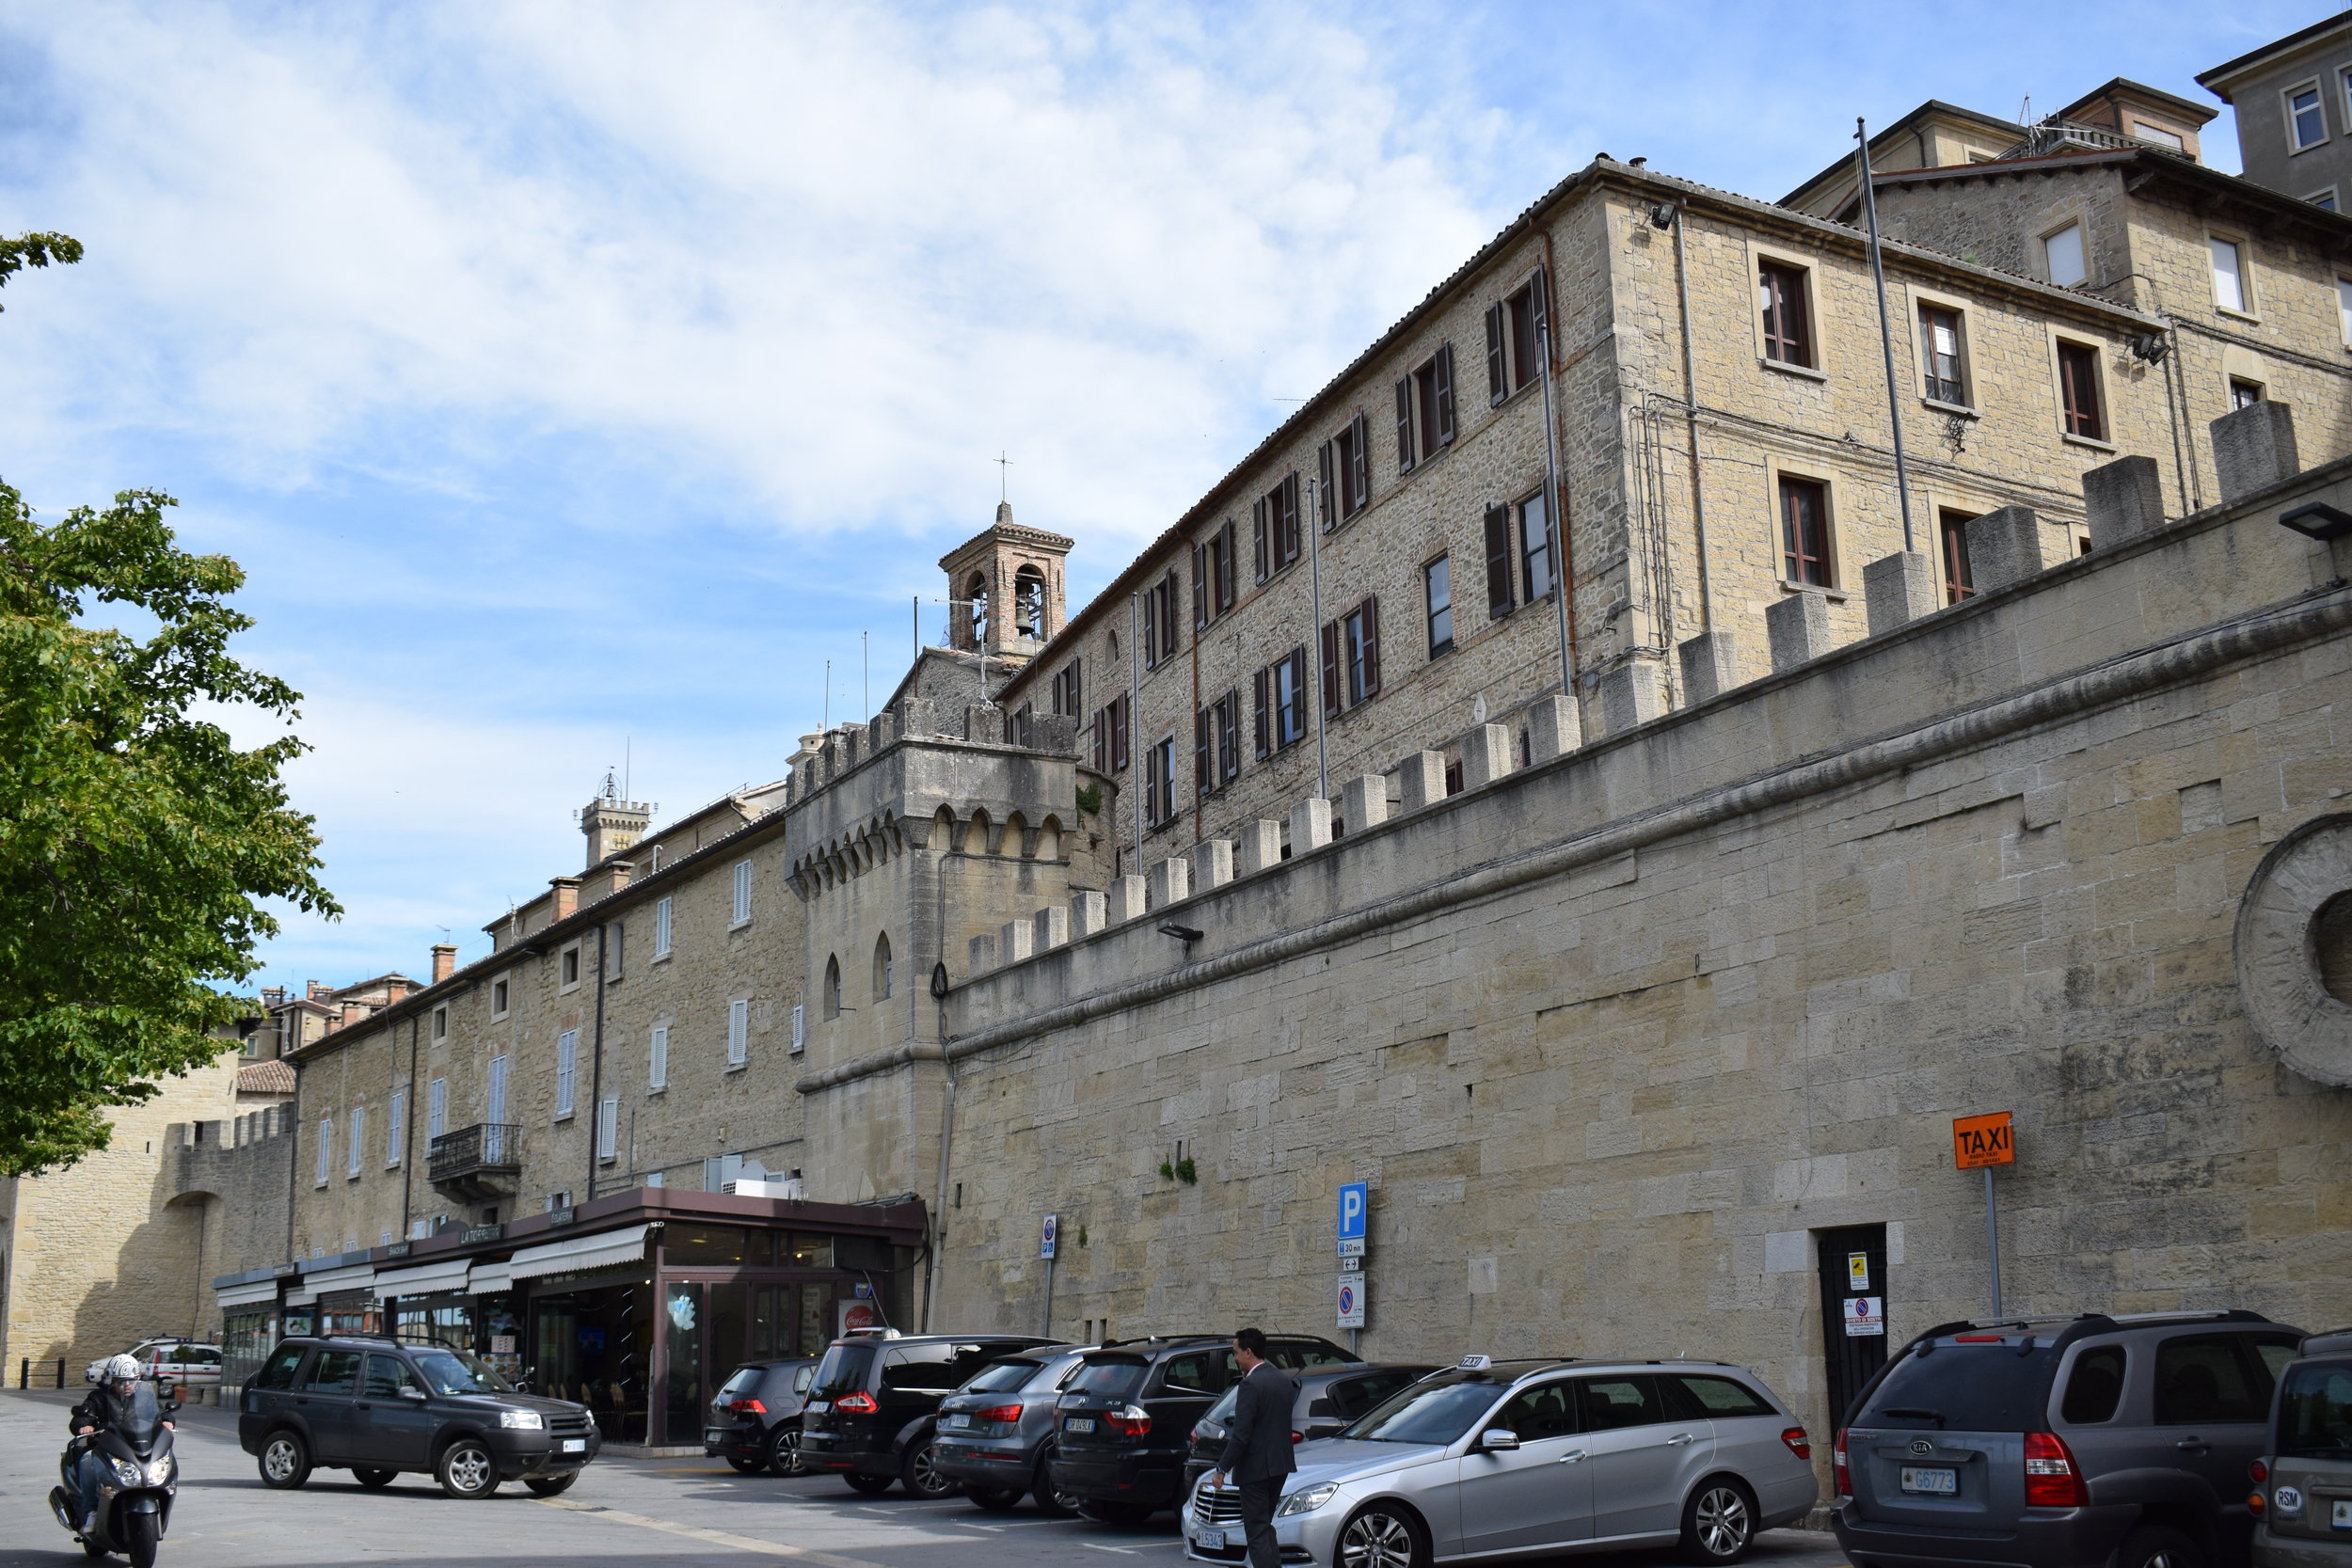 Car parking in the City of San Marino.